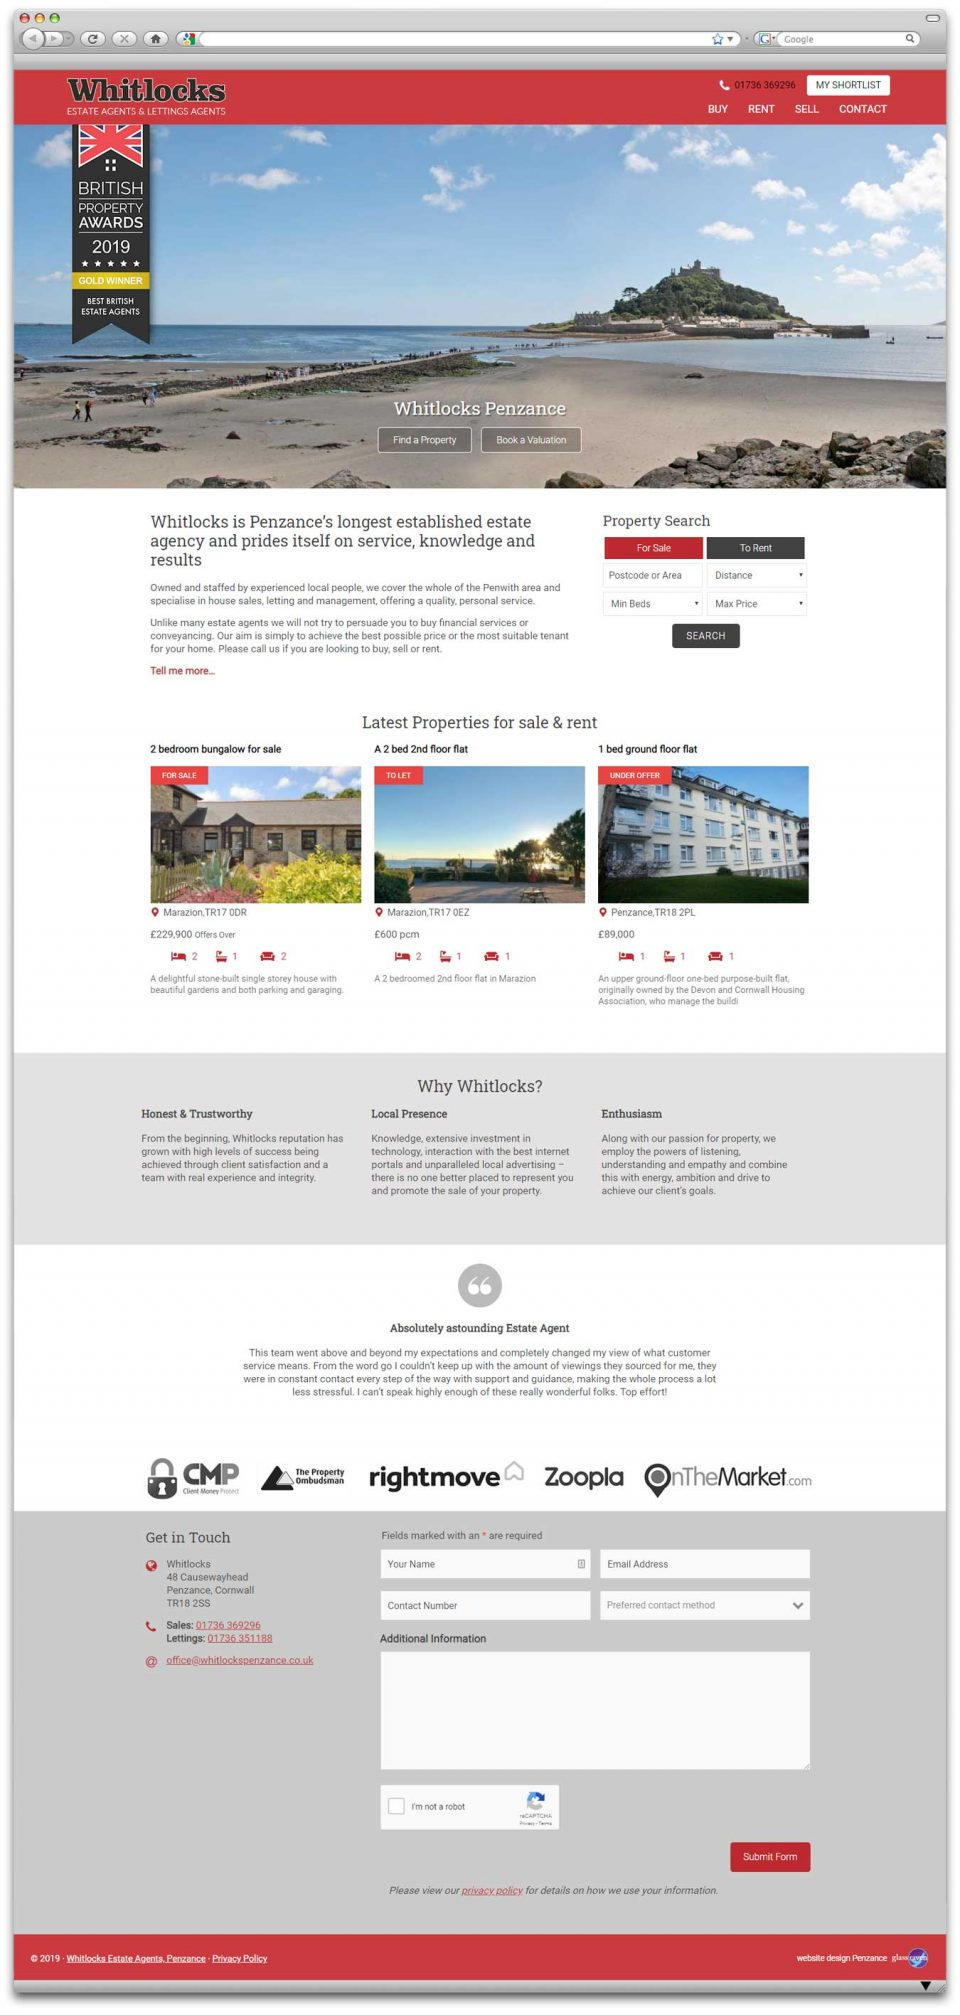 Whitlocks Penzance website design